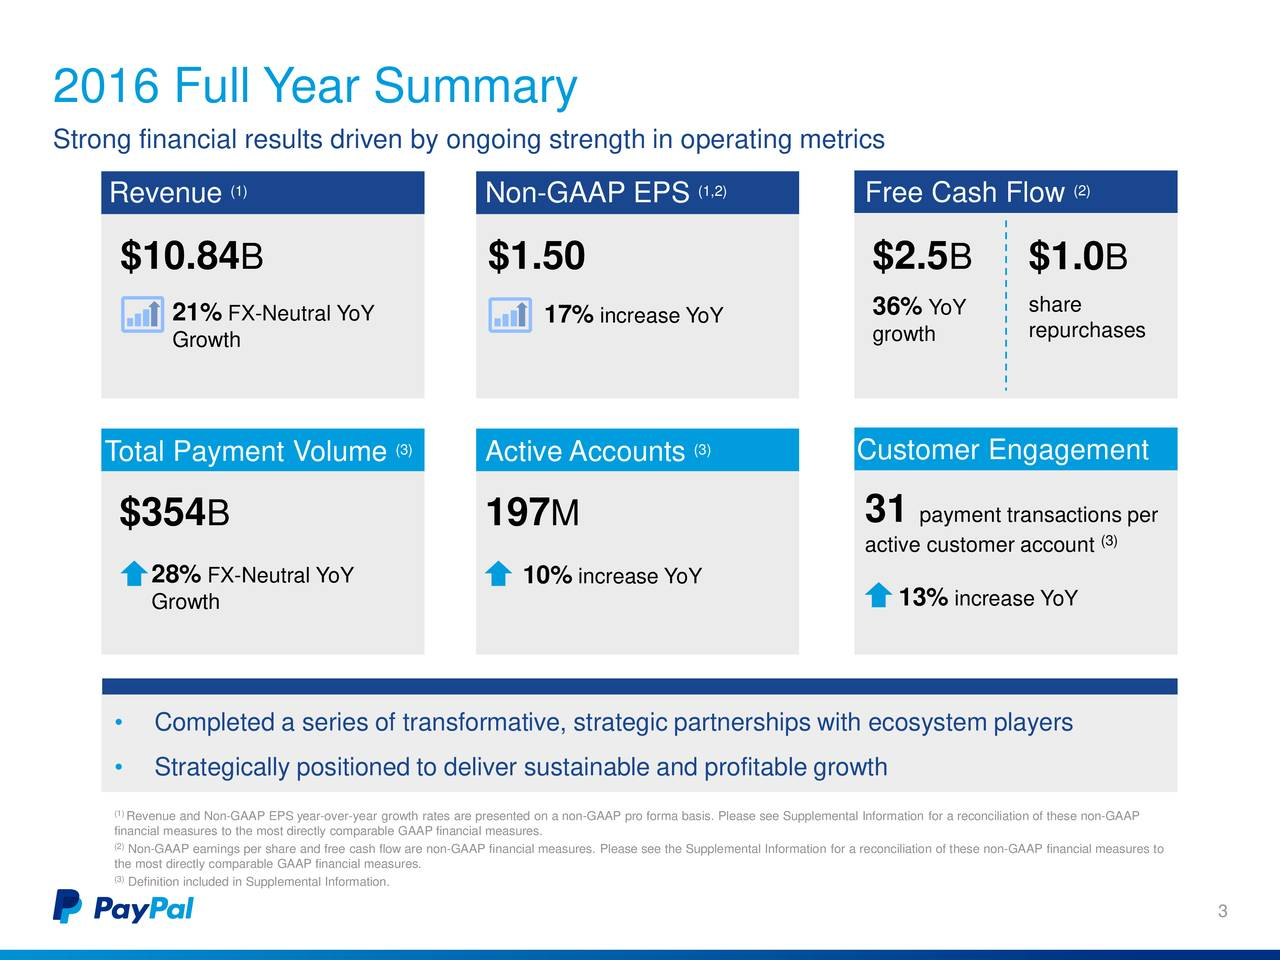 Pypl Quote Paypal Holdings Inc2016 Q4  Results  Earnings Call Slides